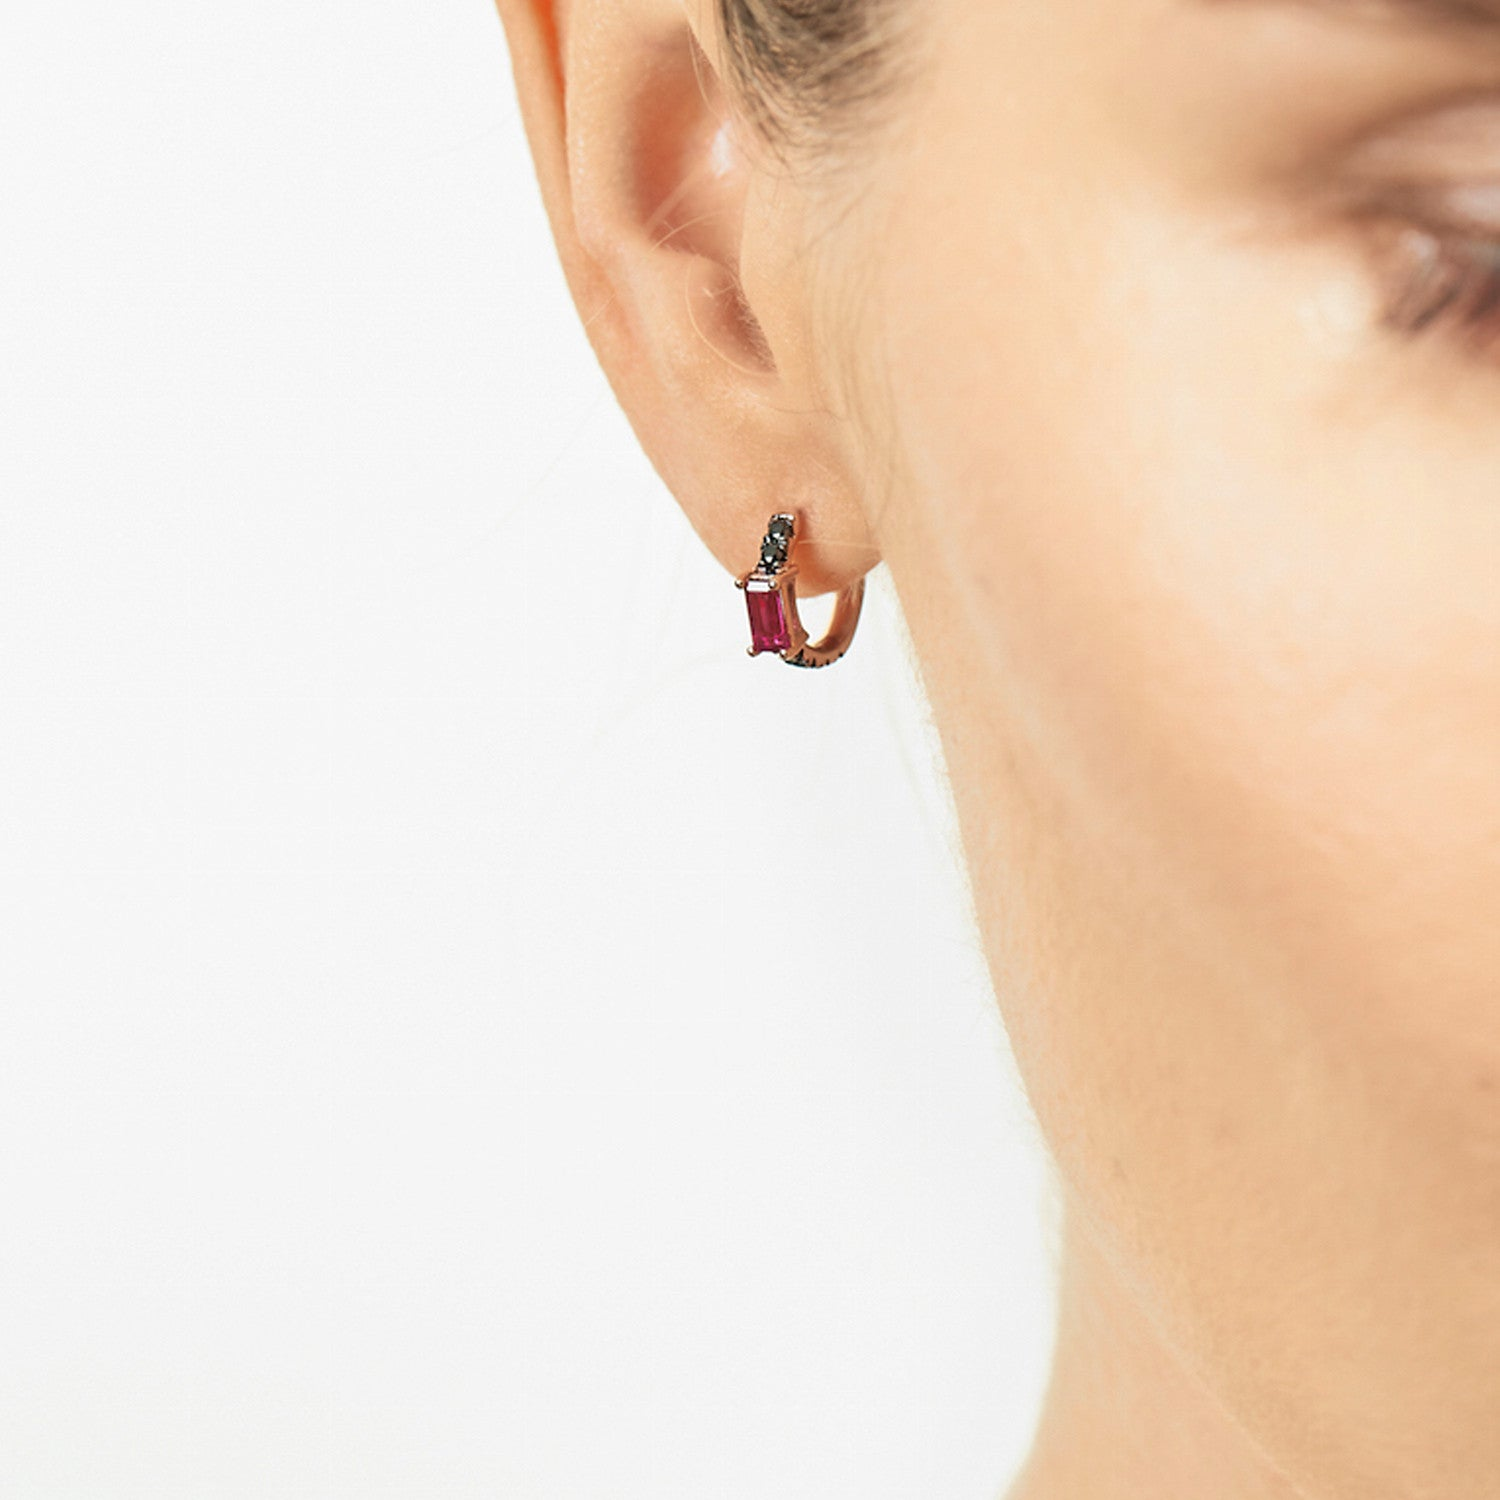 Selin Kent 14K Nikita Huggie Hoops with Black Diamonds and Ruby Baguettes - On Model